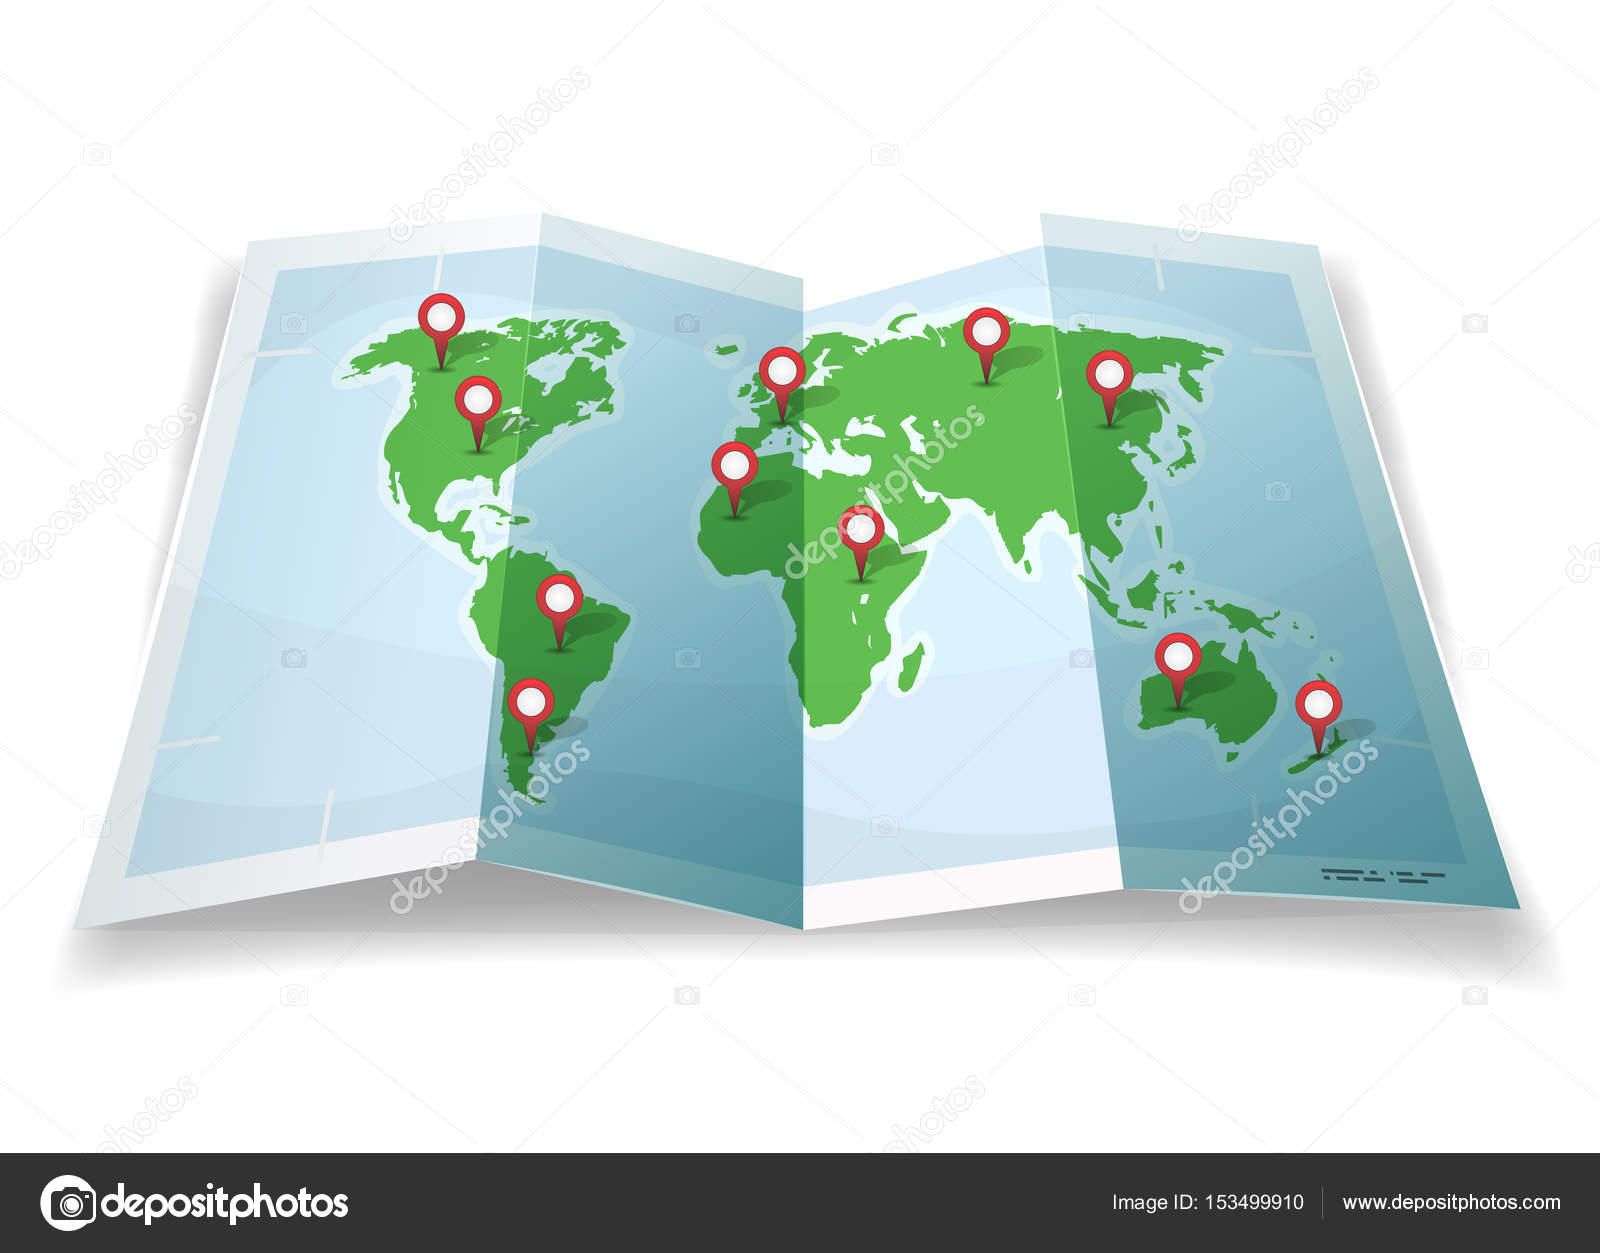 Carte Du Monde Dessin Simple.Illustration Une Carte Monde Simple Dessin Anime Avec Des